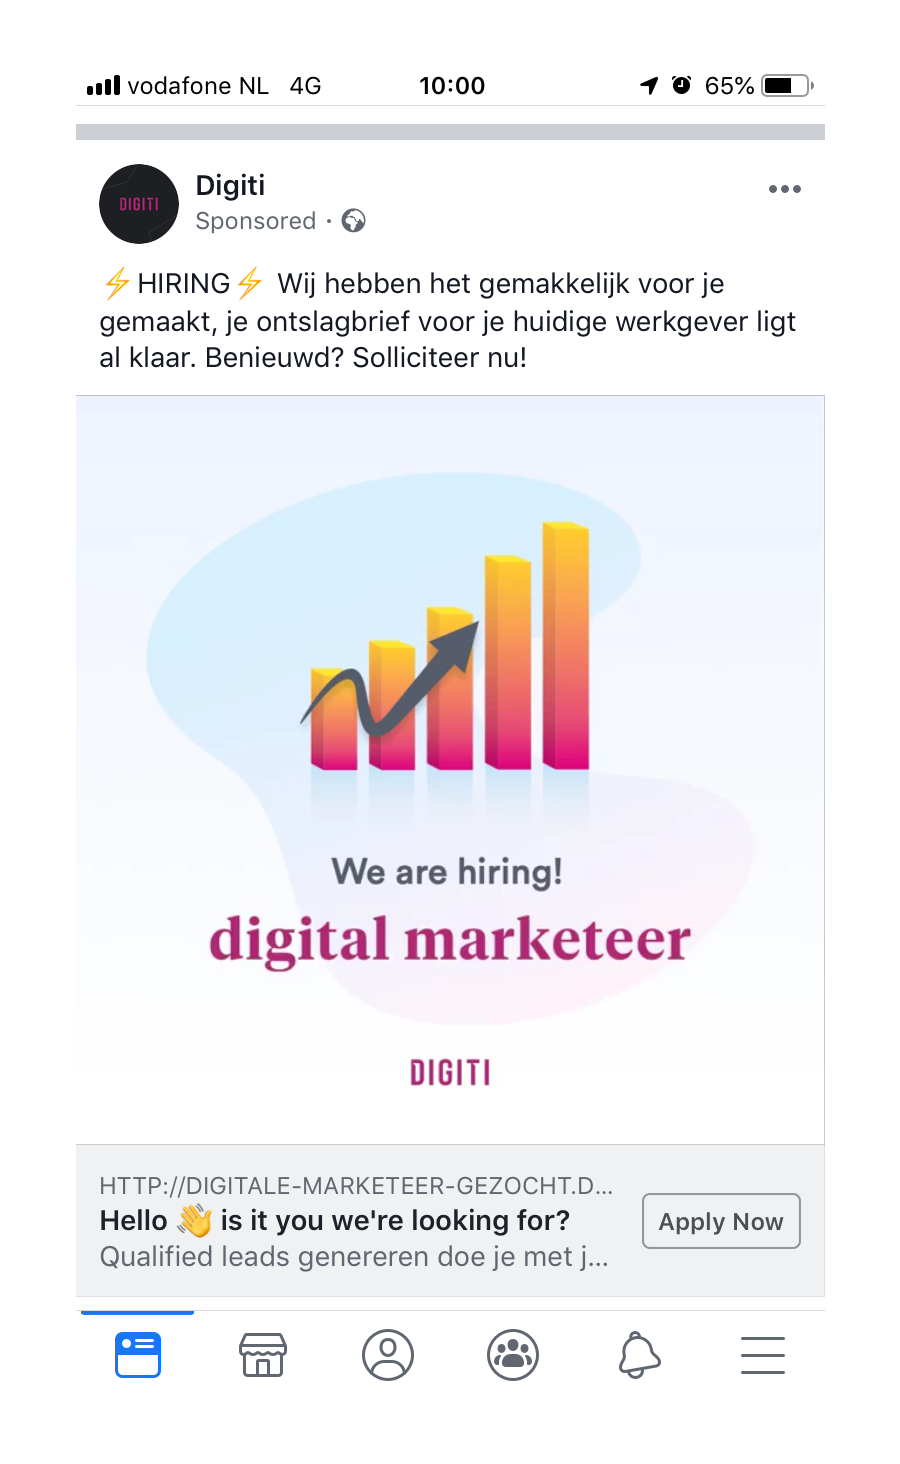 Remarketing Facebook Job Post Digiti